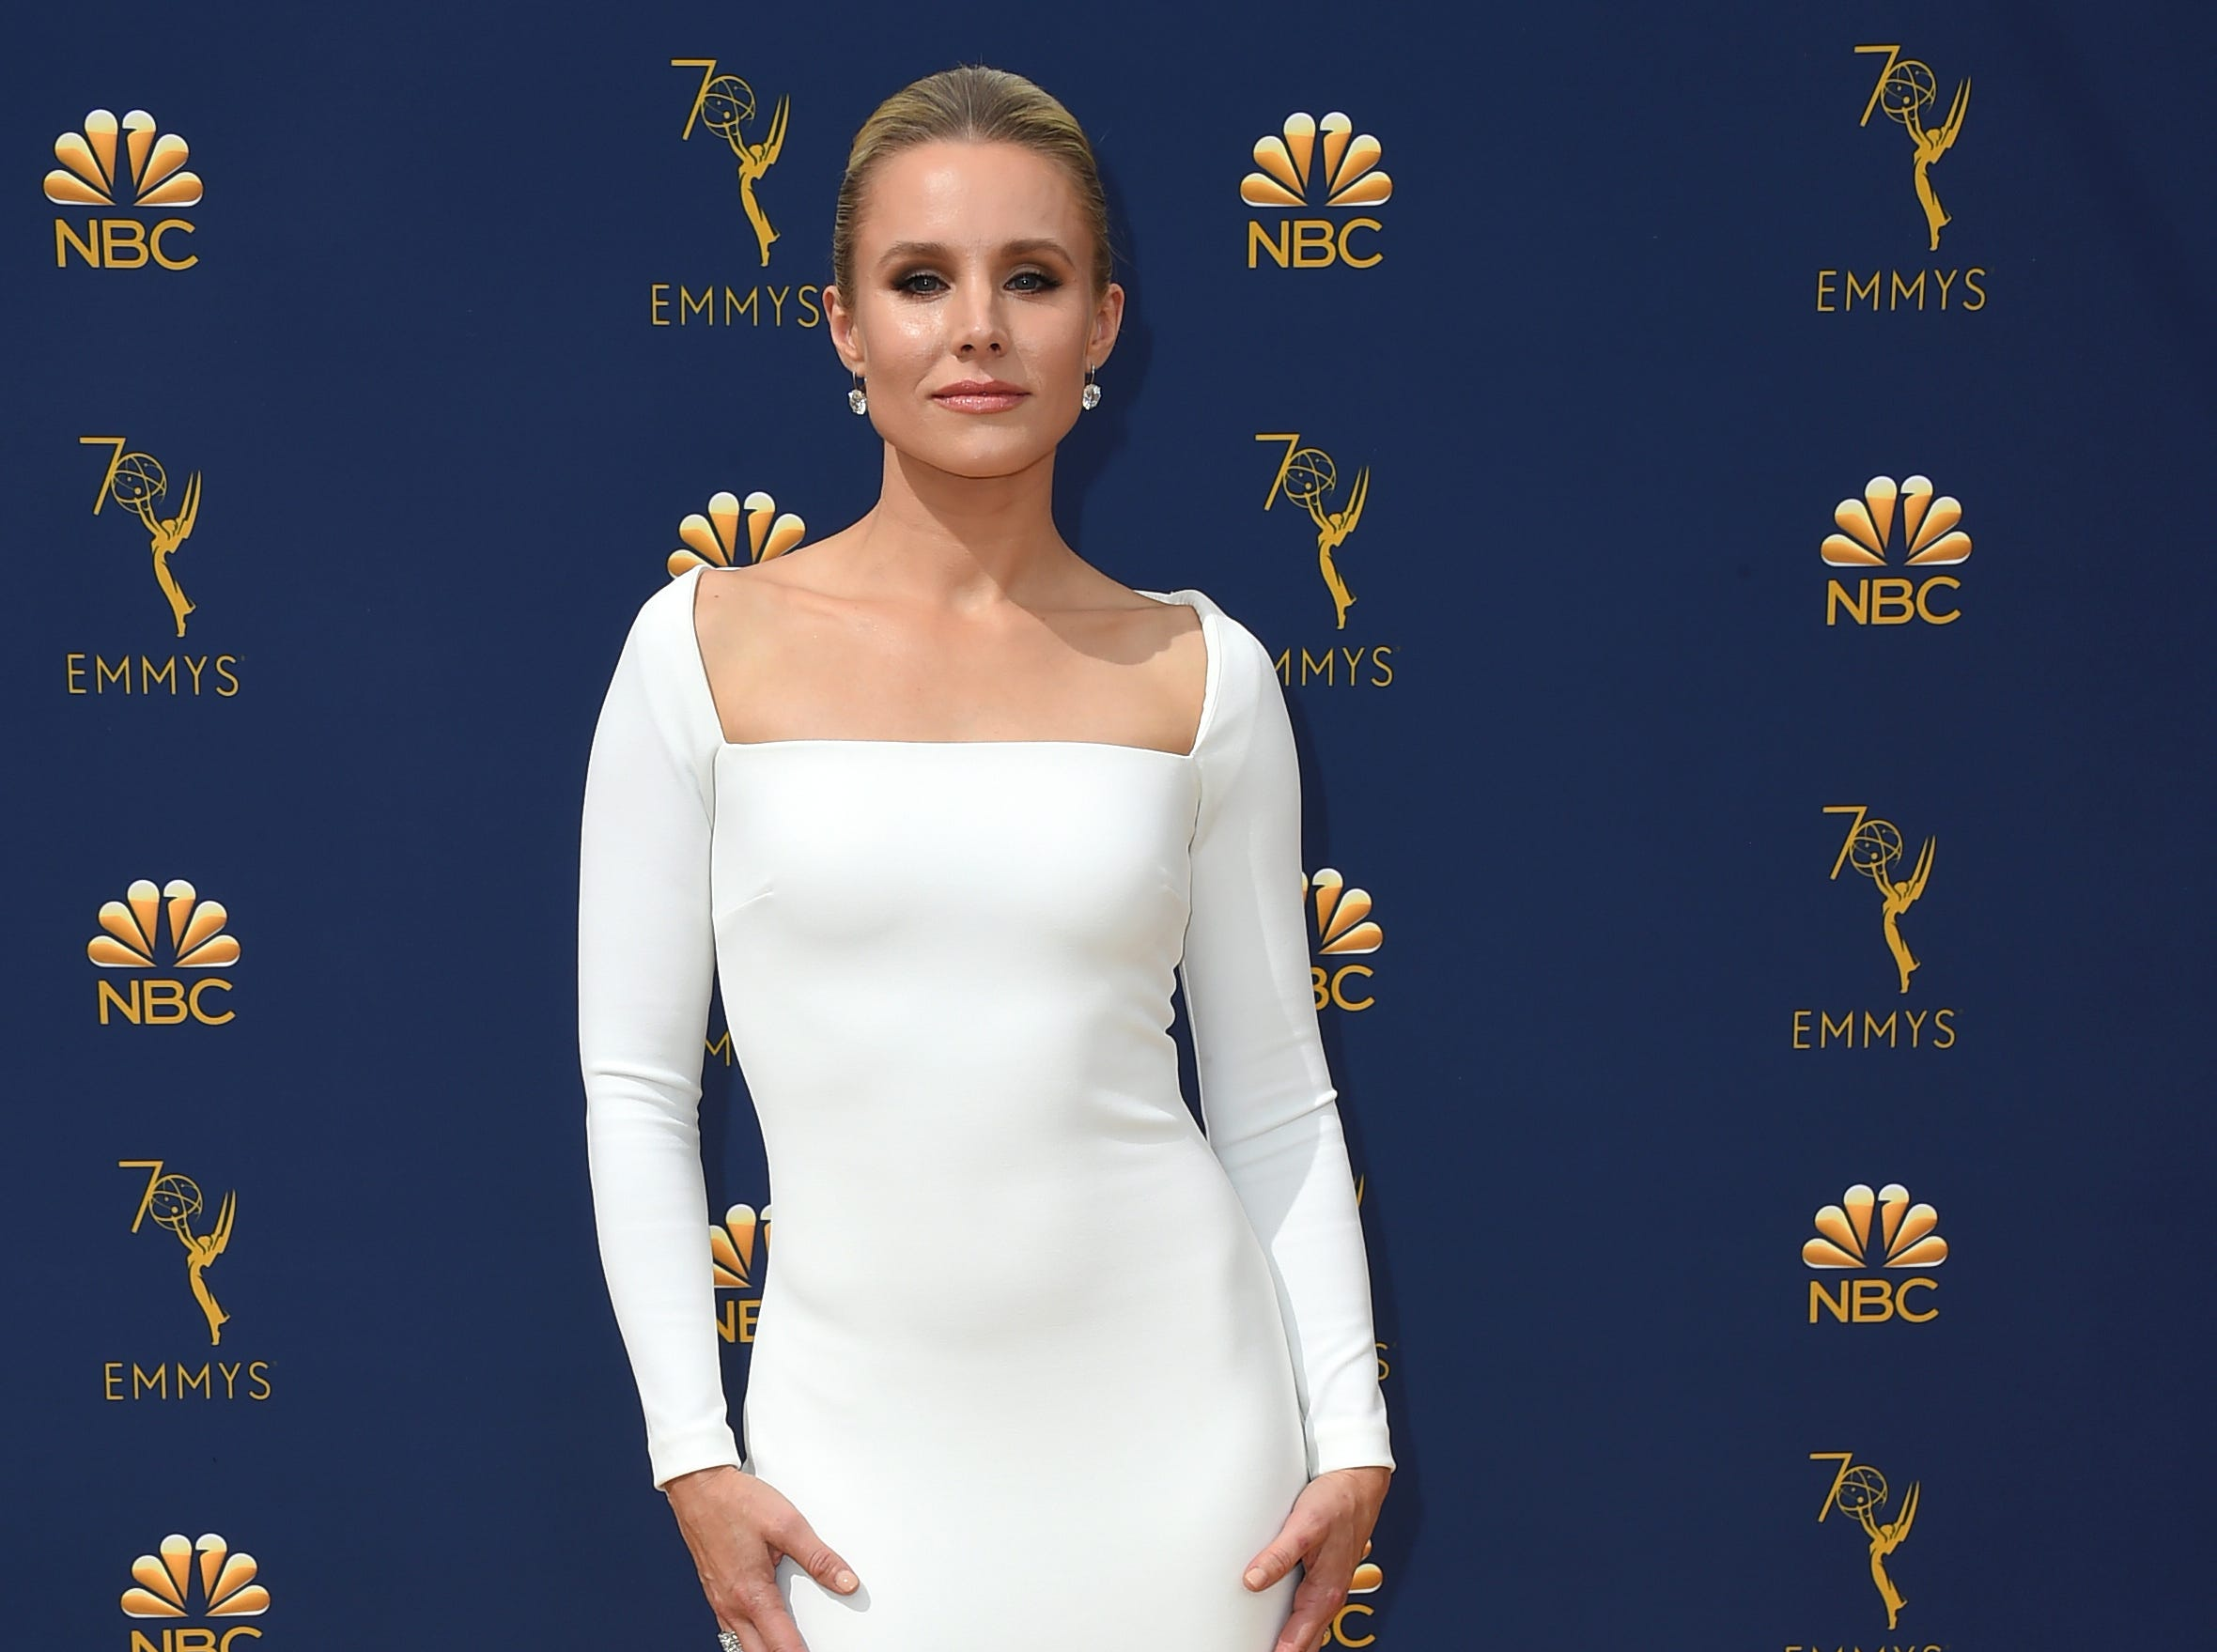 Kristen Bell arrives at the 70th Primetime Emmy Awards on Monday, Sept. 17, 2018, at the Microsoft Theater in Los Angeles.